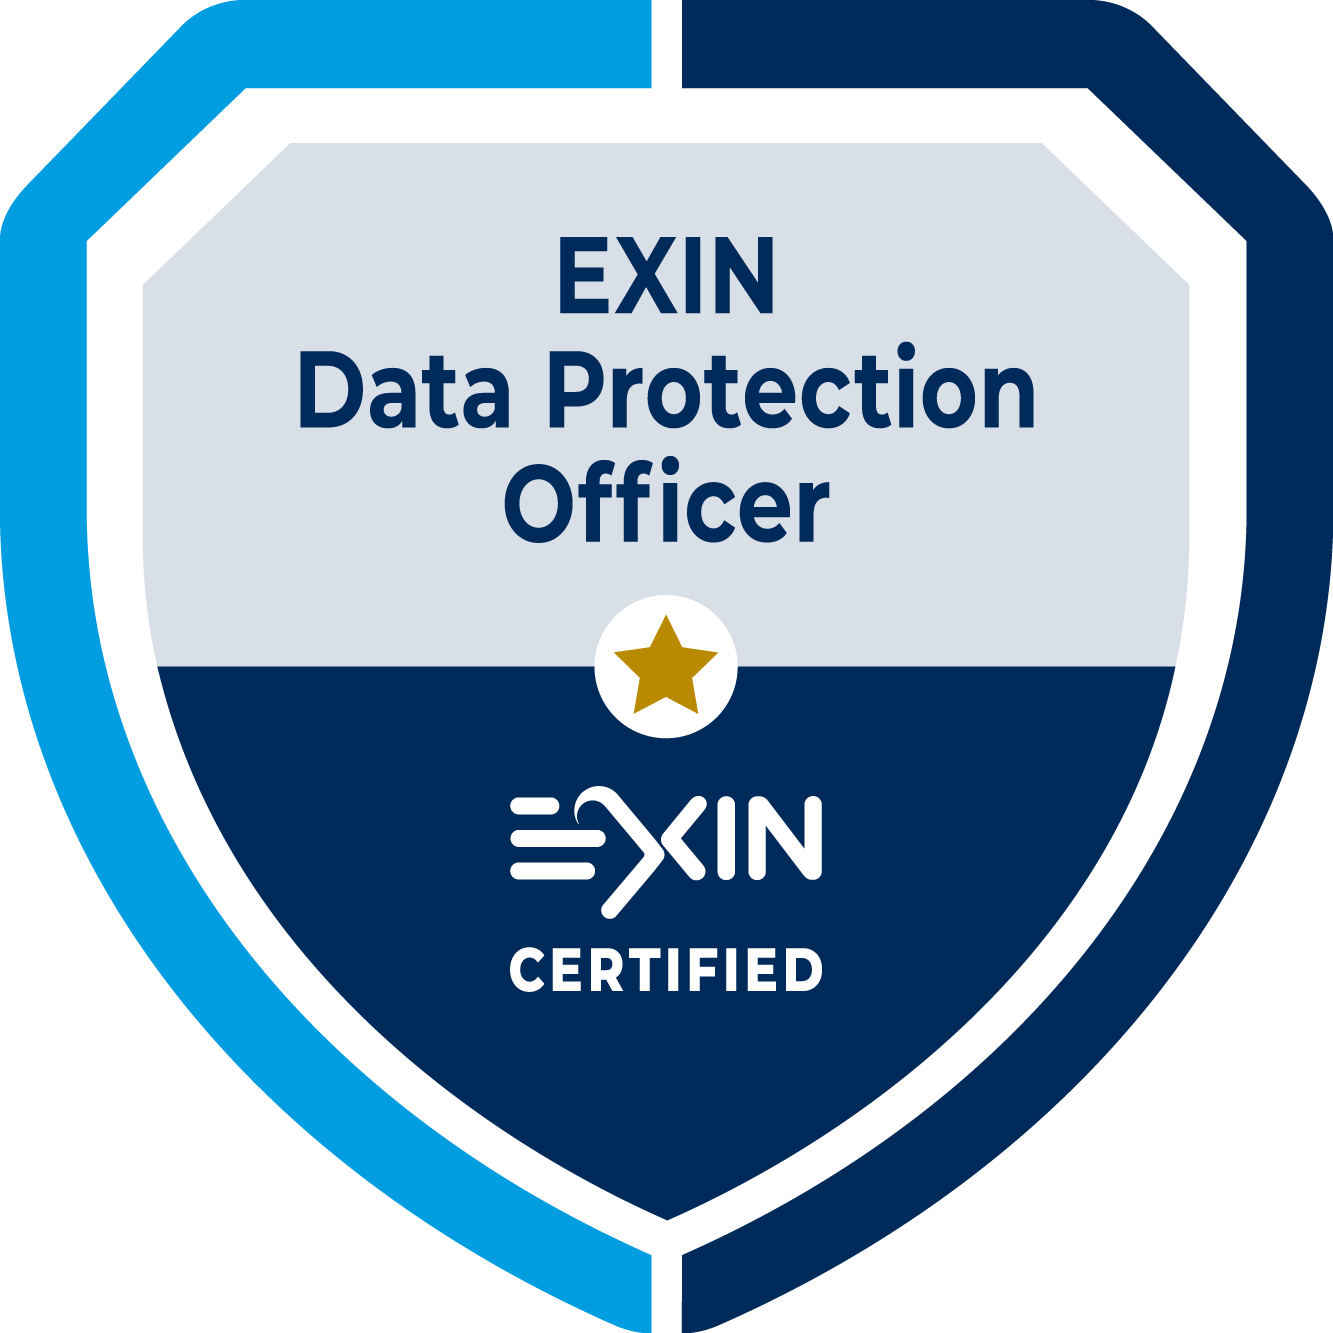 EXIN Certified Data Protection Officer